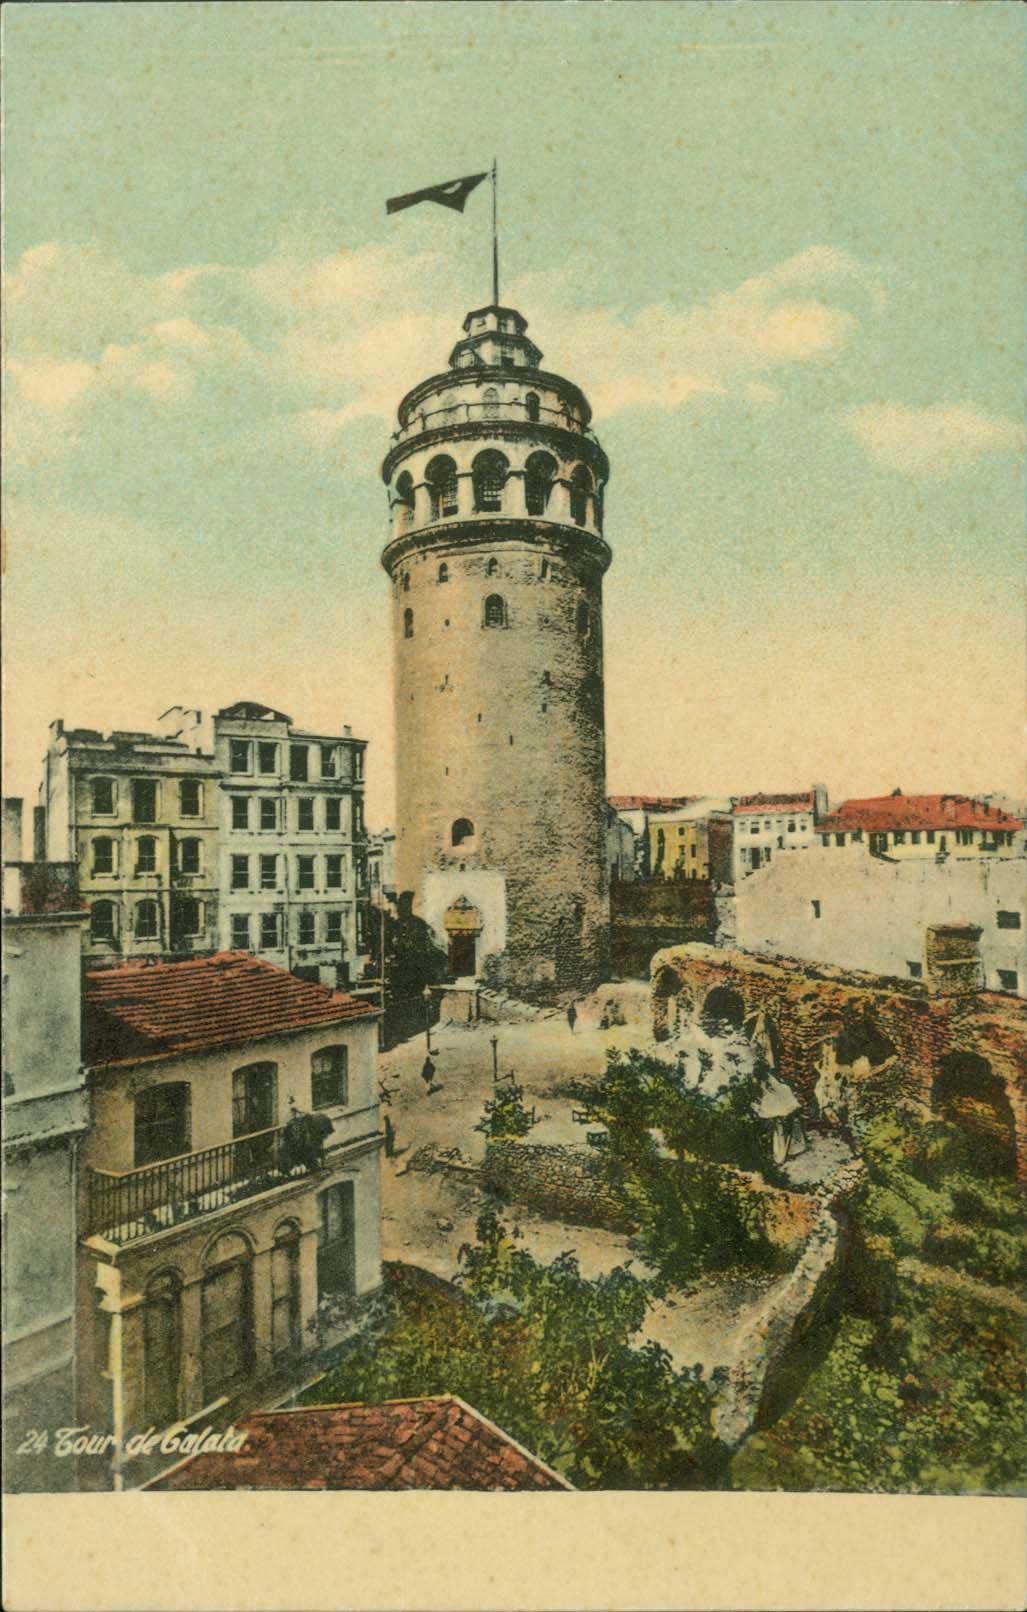 Lot 1637 - -  PICTURE POSTCARDS SMYRNE, CONSTANTINOPLE, ASIA MINOR -  A. Karamitsos Public Auction 646 General Stamp Sale